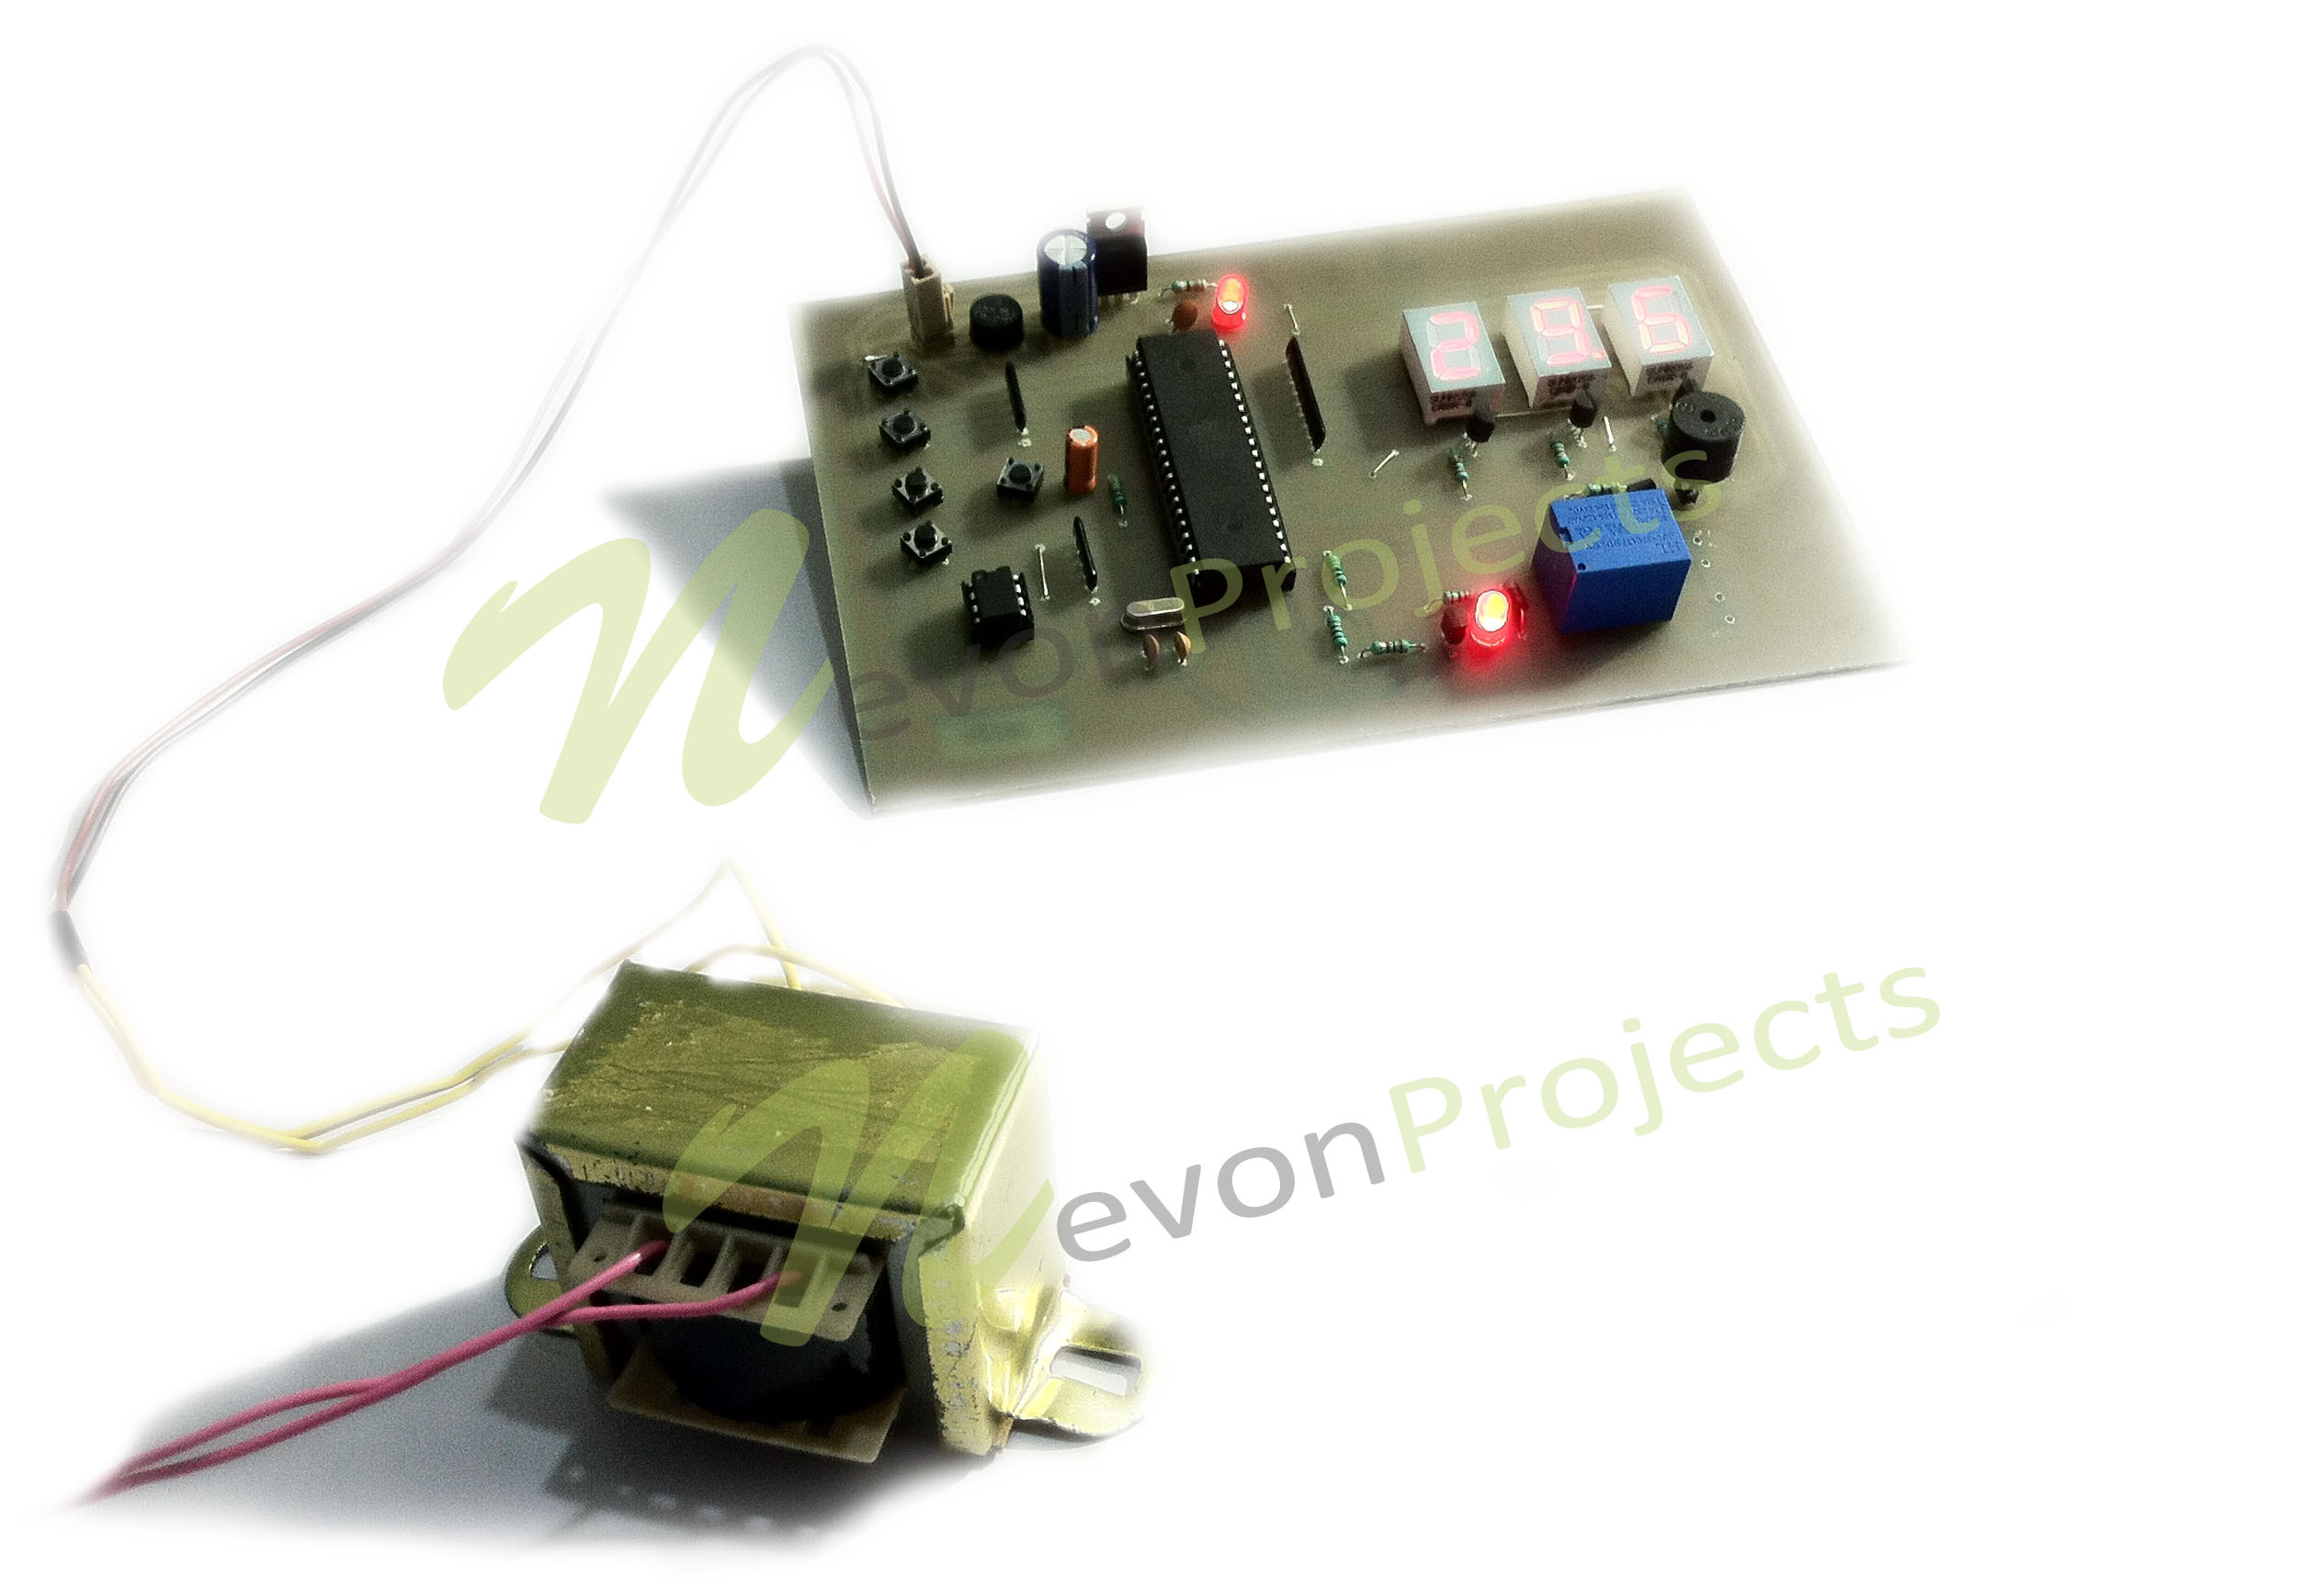 Machine Overheat Detection With Alert Nevonprojects Car Overheating Alarm Project